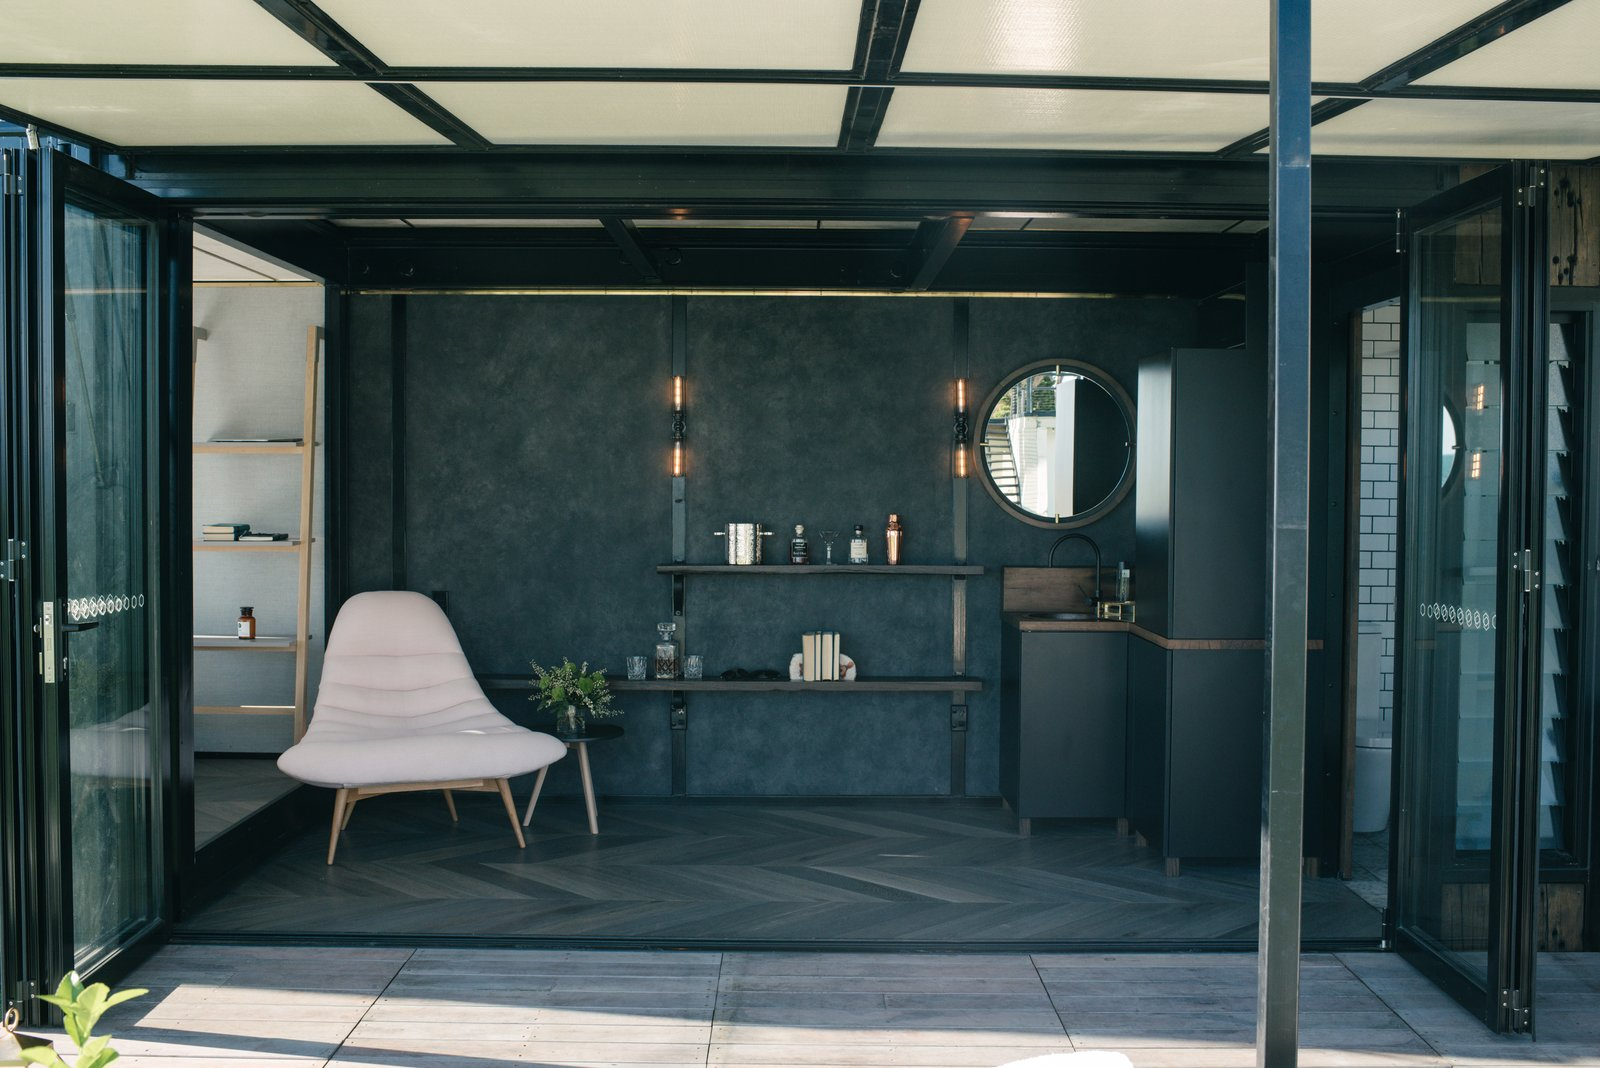 Photo 3 of 9 in An Australian Firm Makes Portable Hotel Rooms Out of Shipping Containers